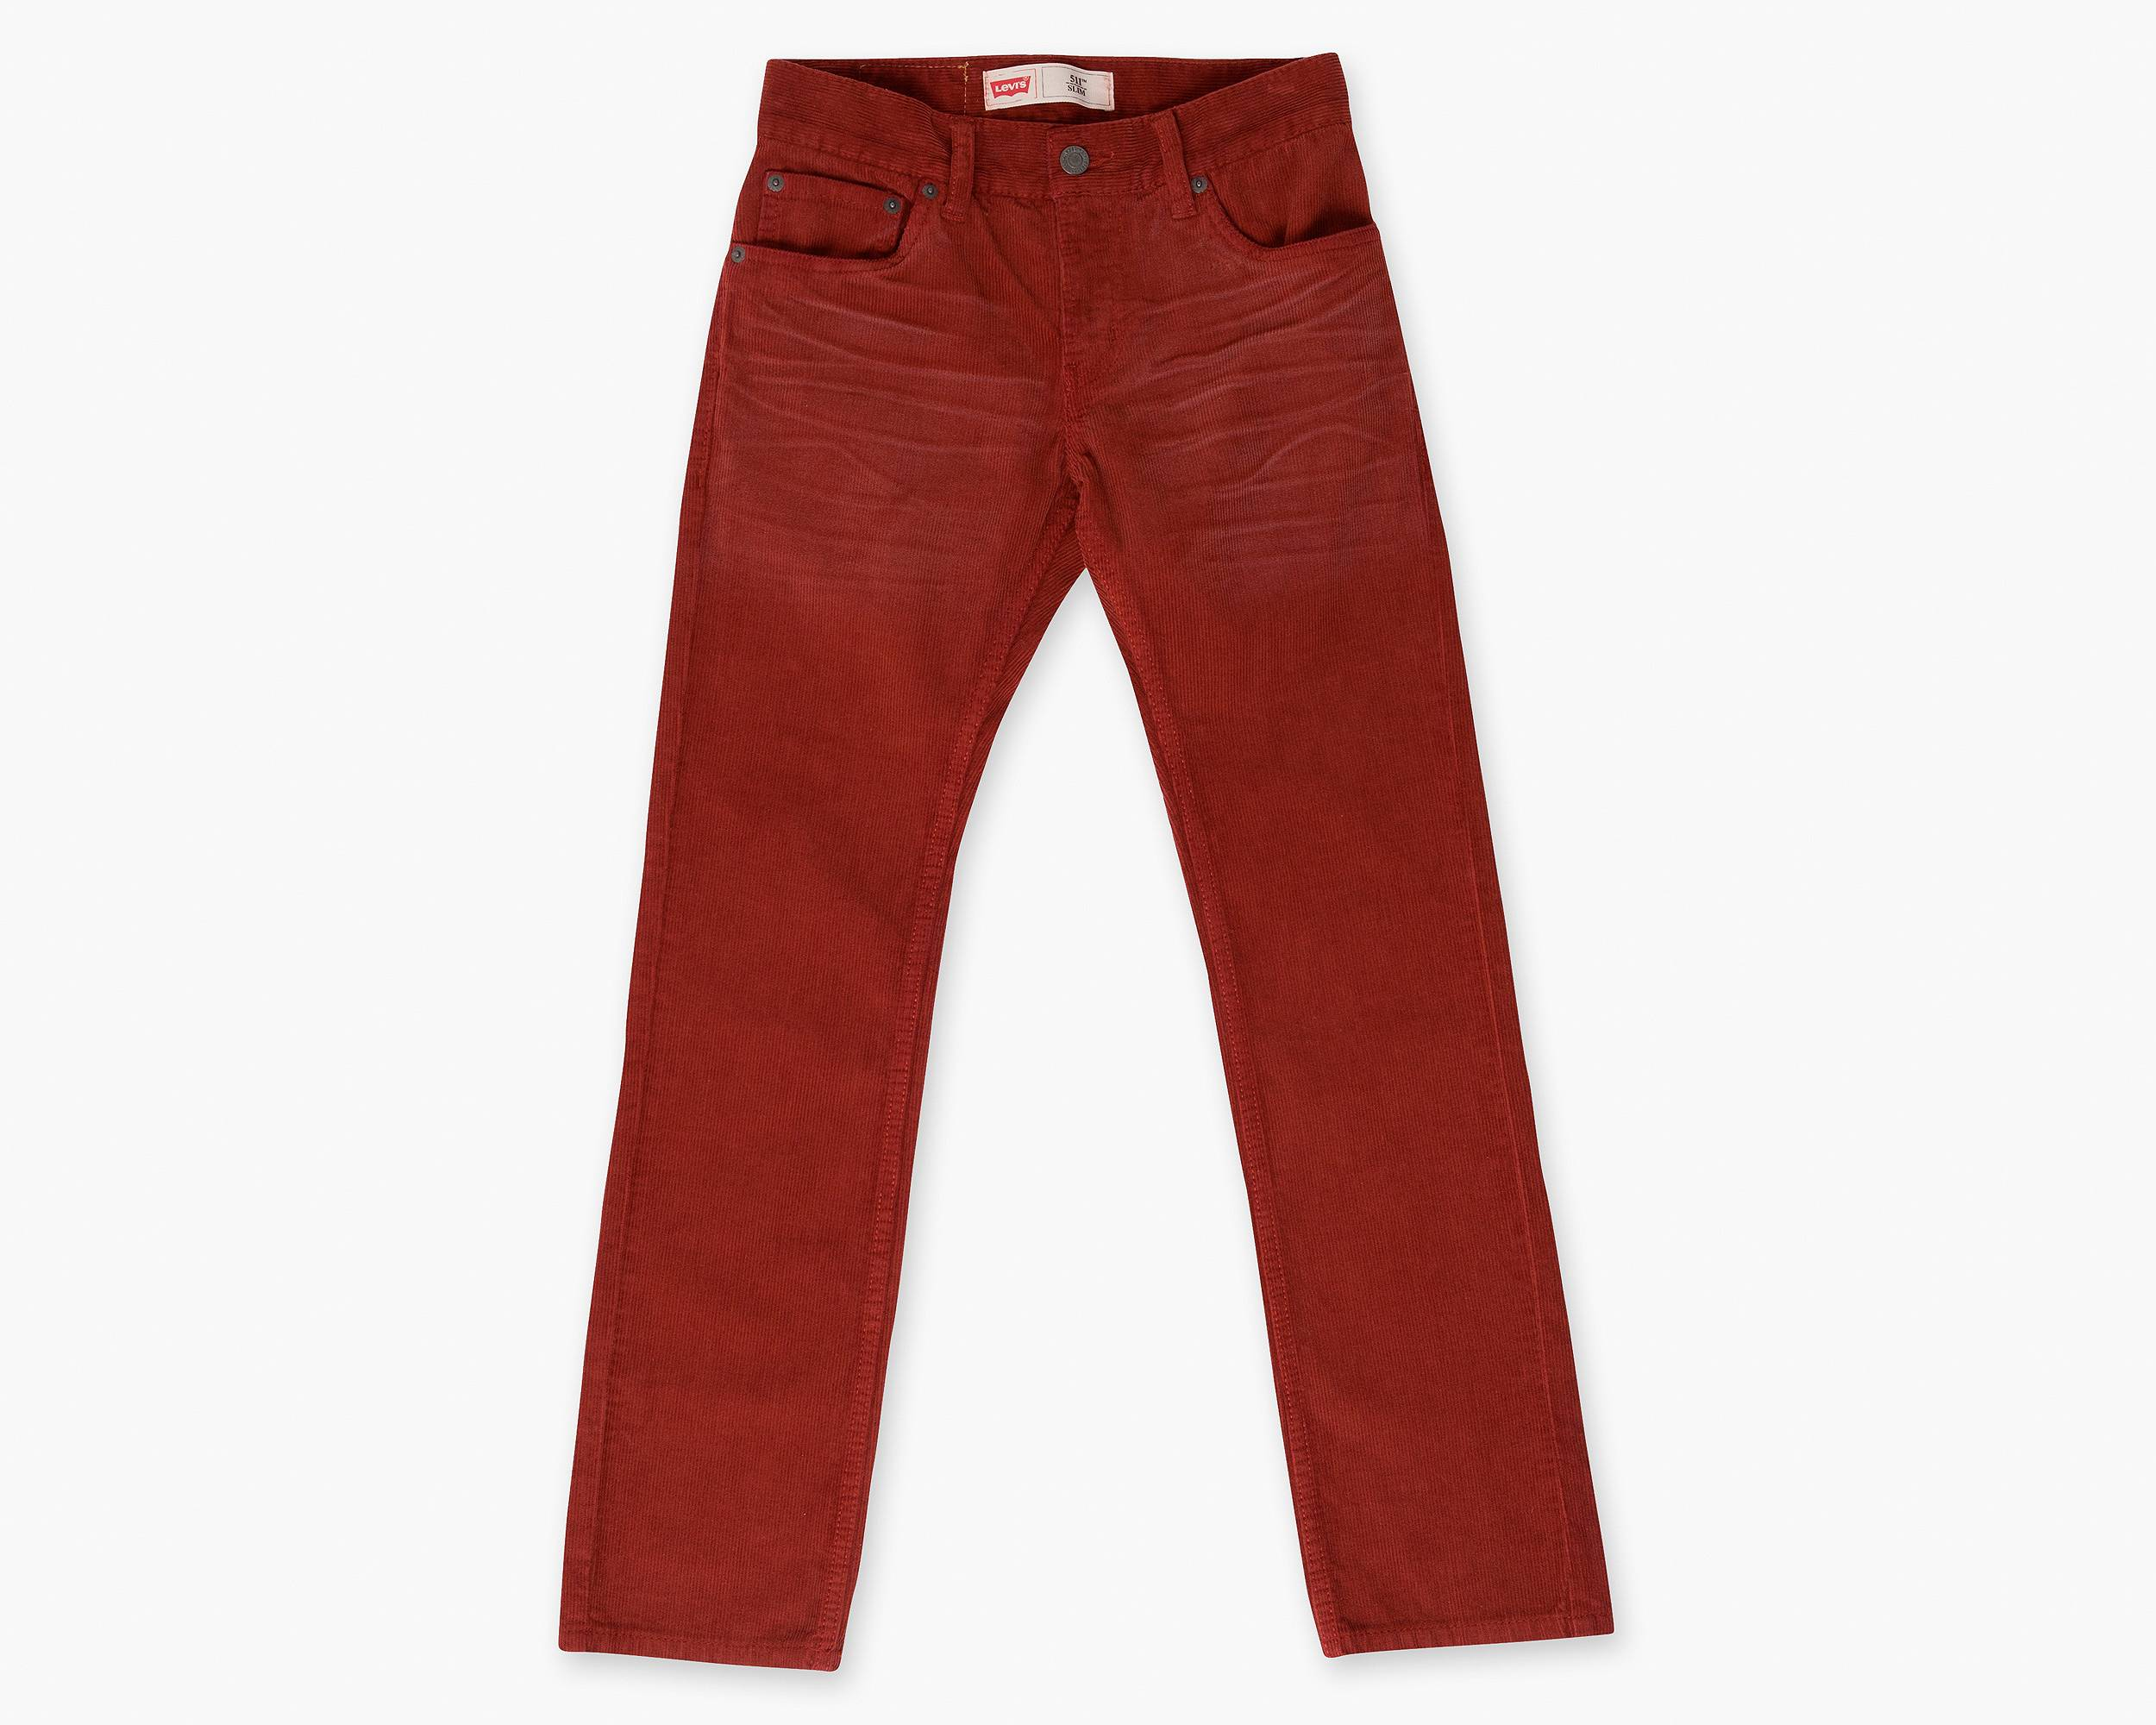 Toddler Boys Corduroy Pants | Gpant